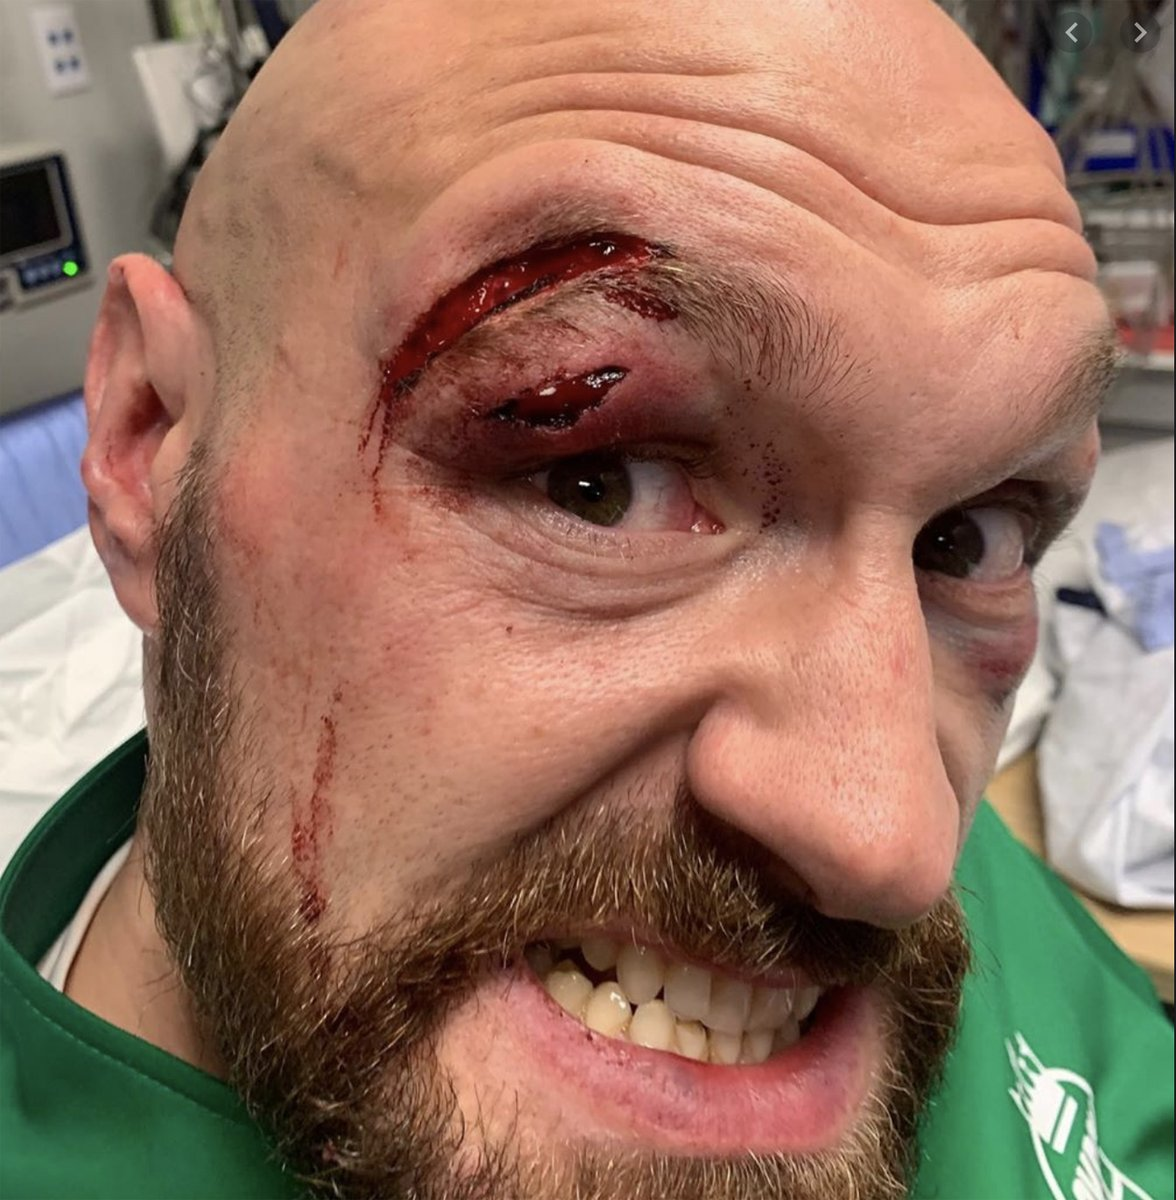 Tyson Fury cut: Deontay Wilder claims gruesome gash reopened in sparring as theory emerges #WilderFury2  https://www.express.co.uk/sport/boxing/1245848/Tyson-Fury-cut-Deontay-Wilder-training-camp-reopened-Wilder-vs-Fury-2-boxing-news…pic.twitter.com/J6ZuYiXLmB